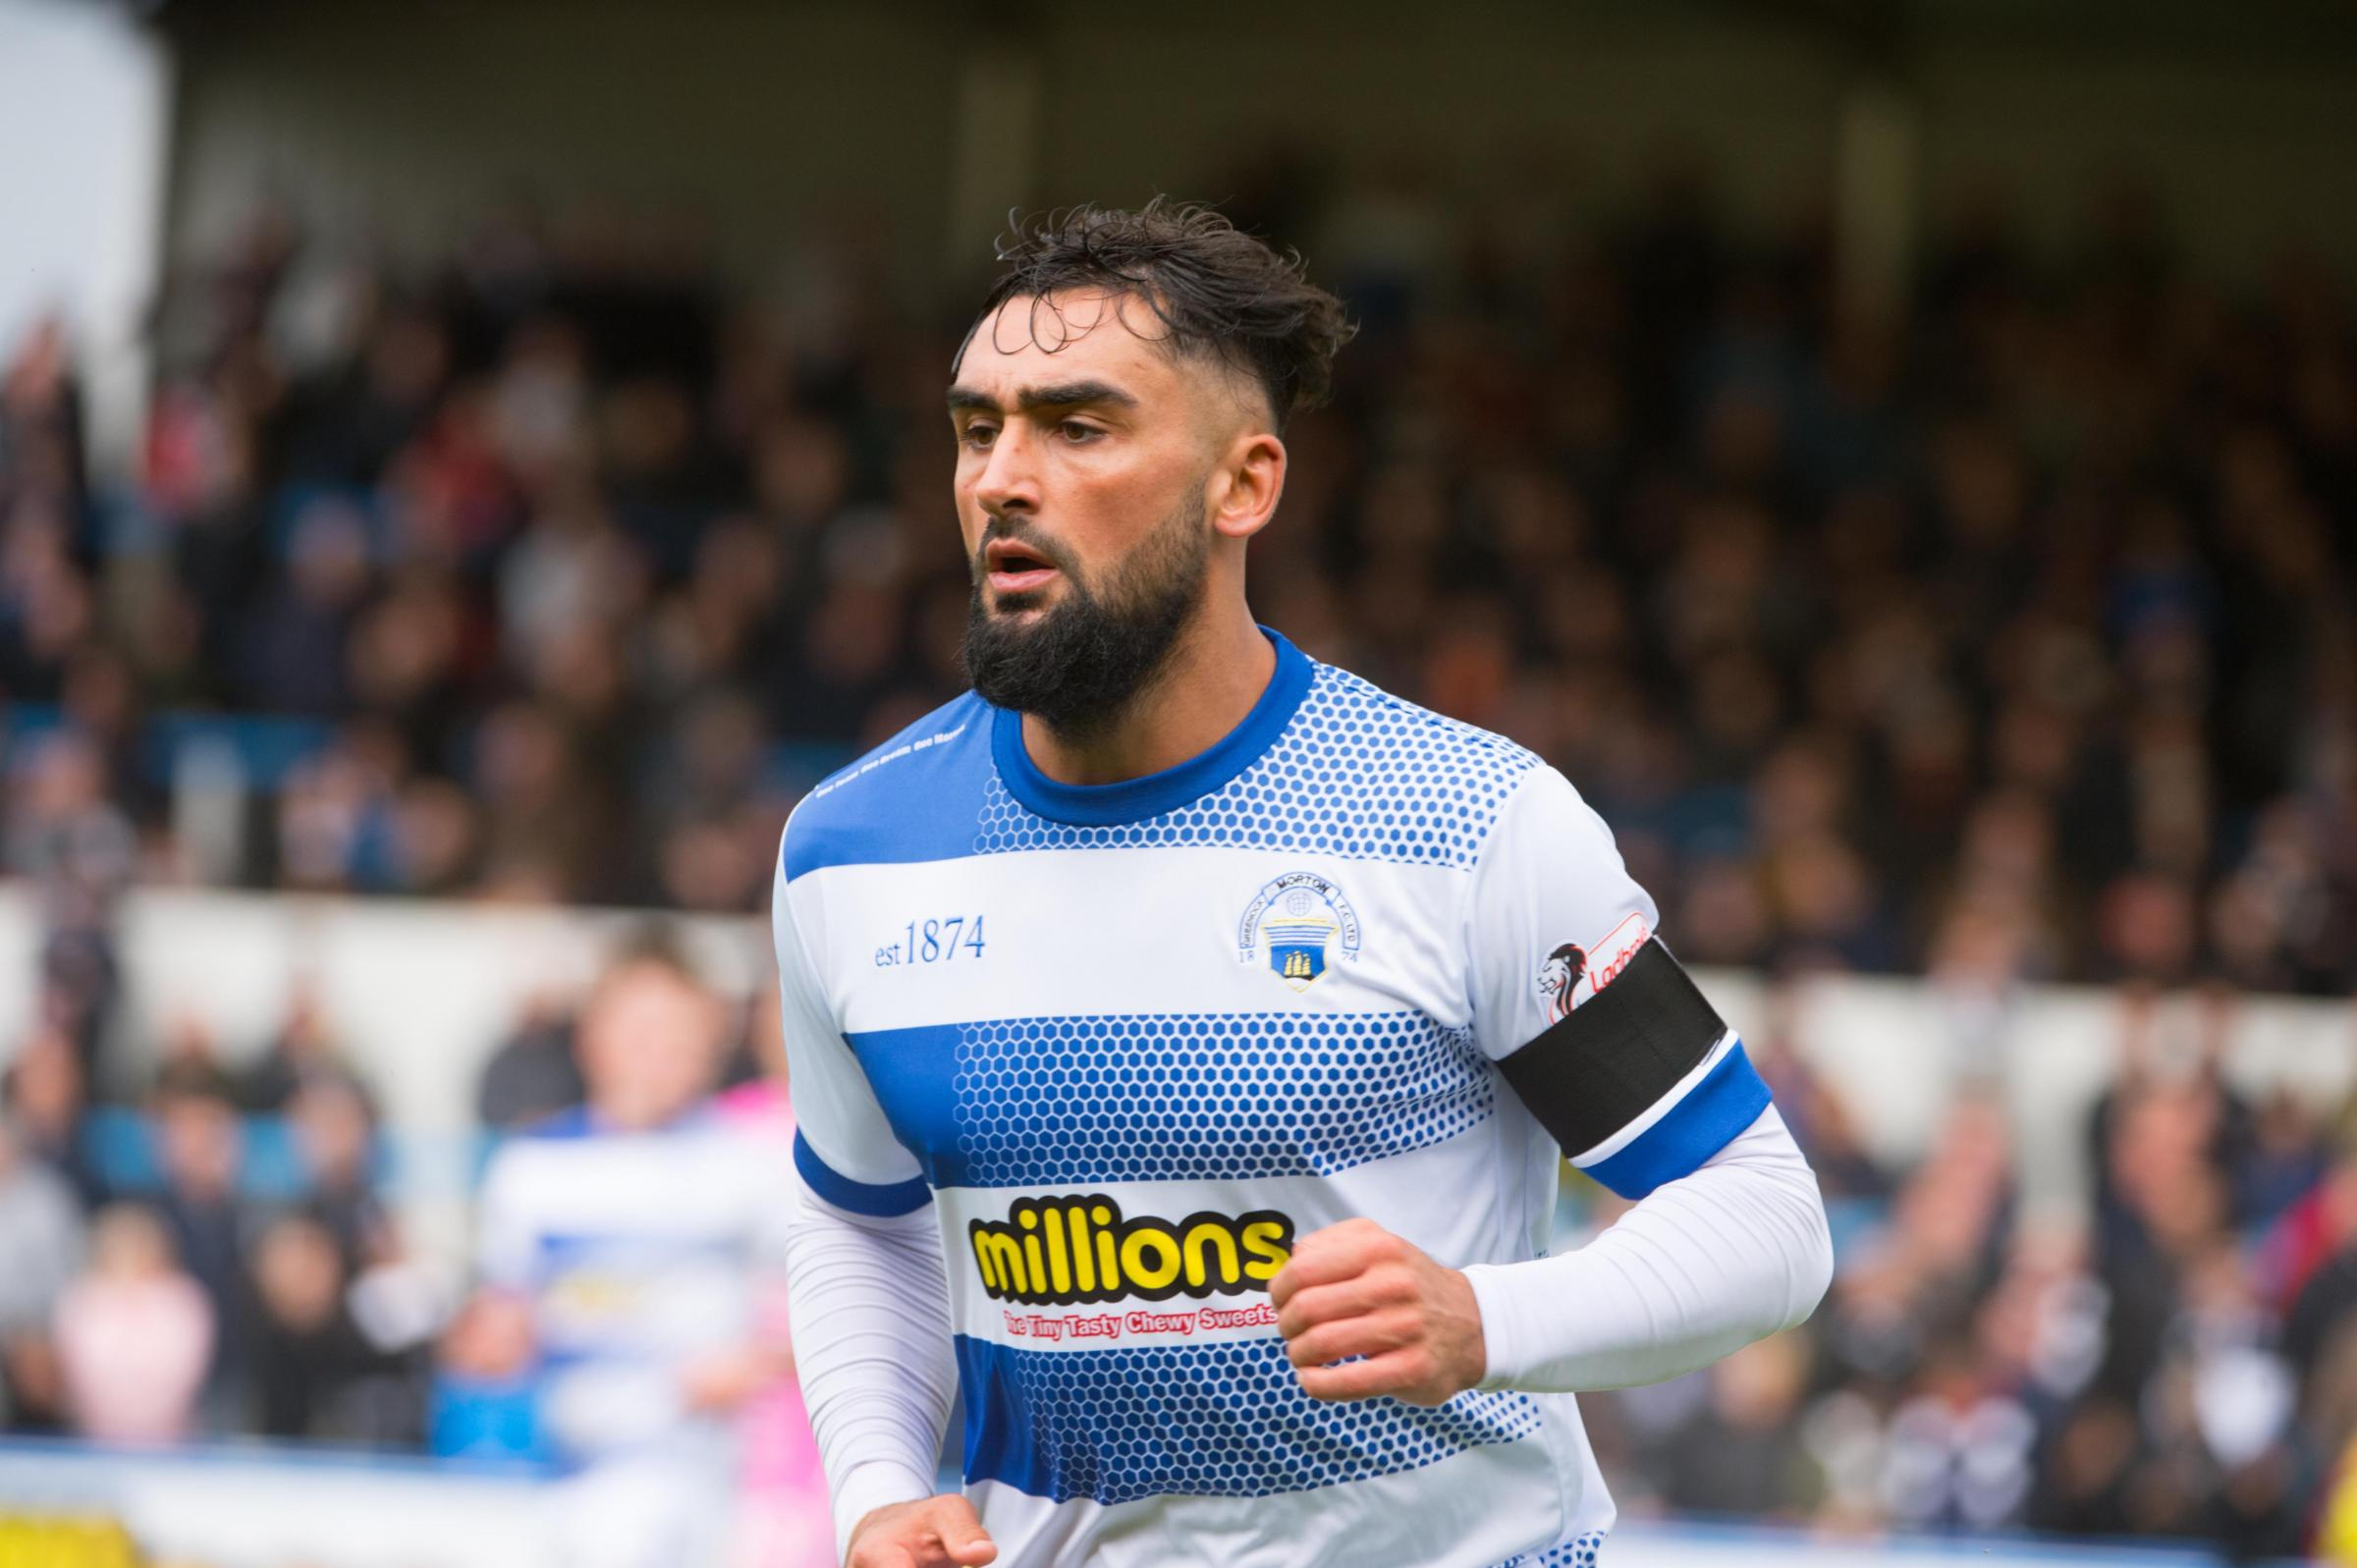 Morton defender back up and running after 'freak' injury